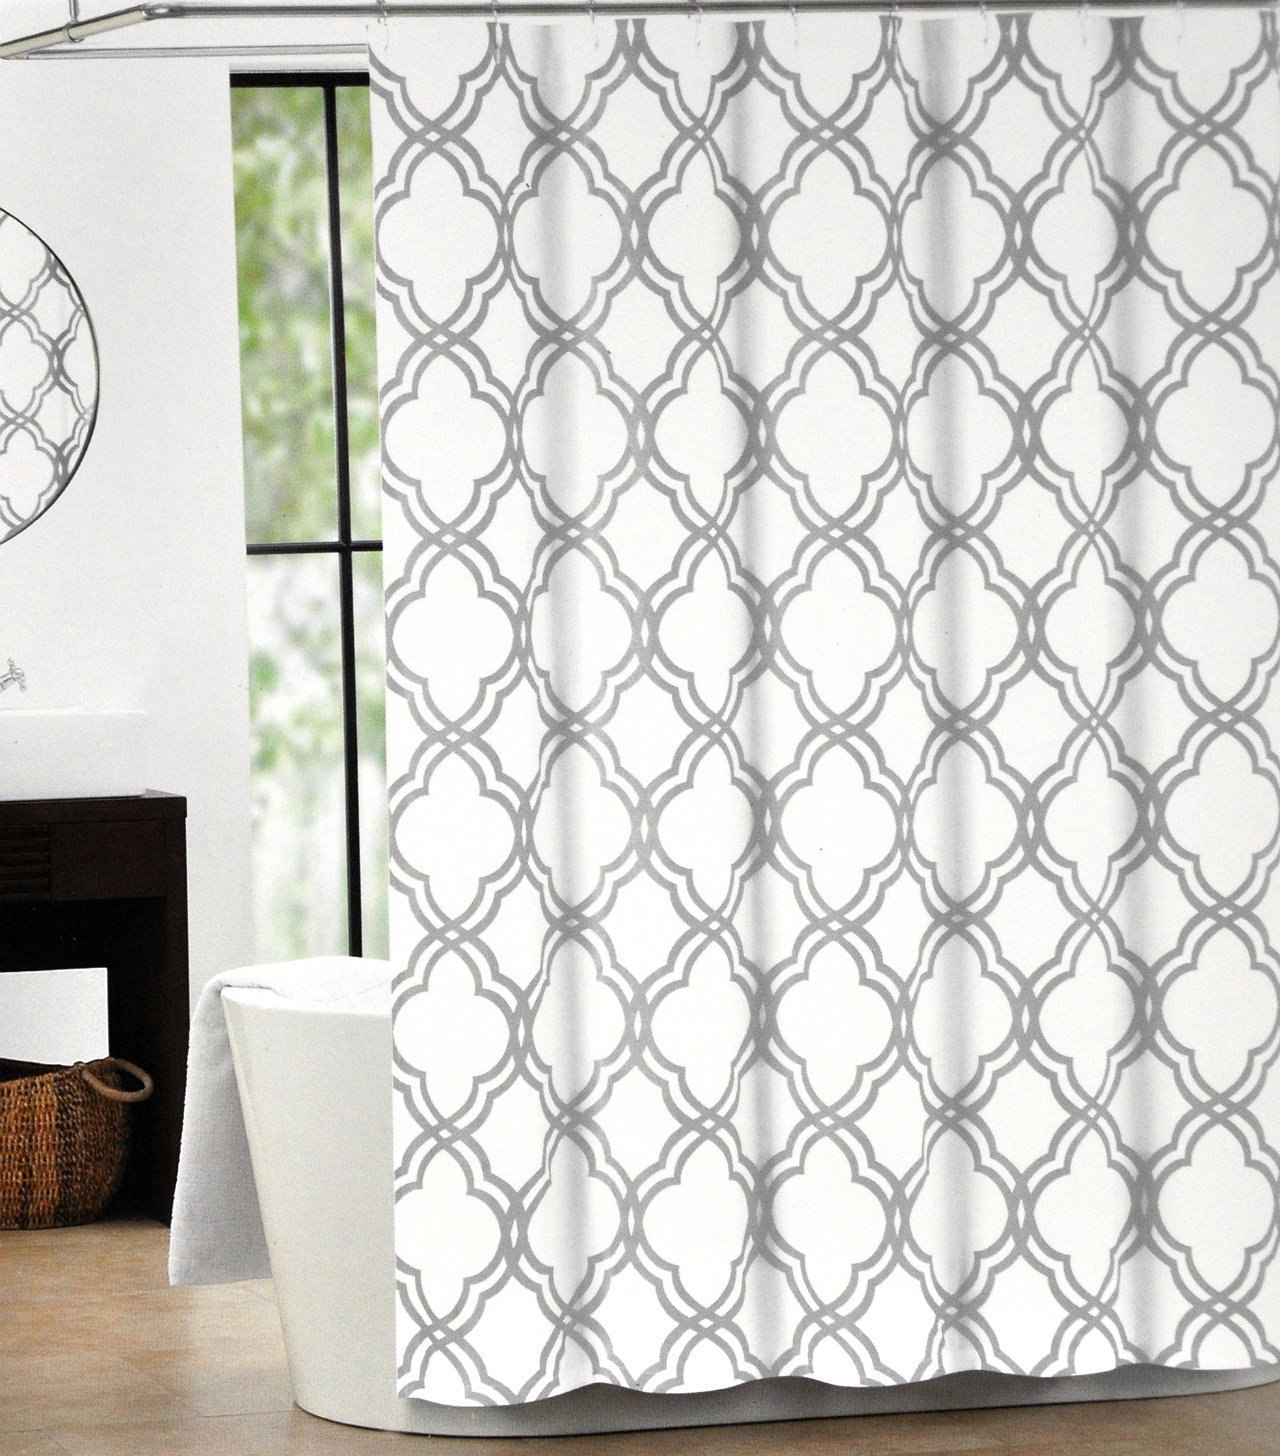 Moroccan curtains white - Memory Home Max Studio Home Cotton Shower Curtain Moroccan Tile Quatrefoil Gray And White Lattice 70x72inch